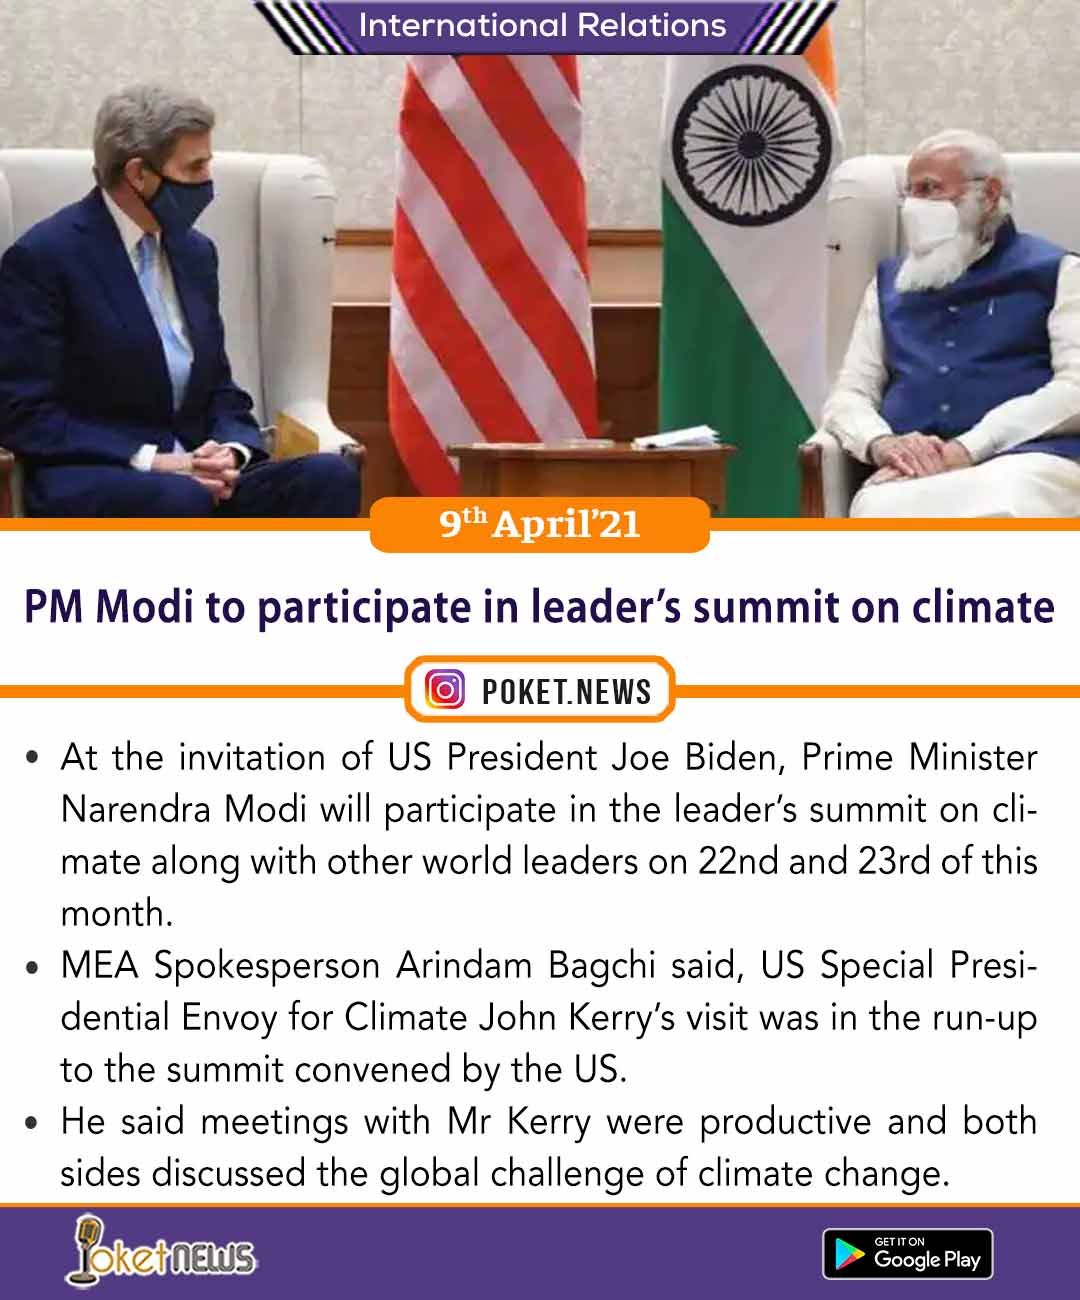 PM Modi to participate in leader's summit on climate